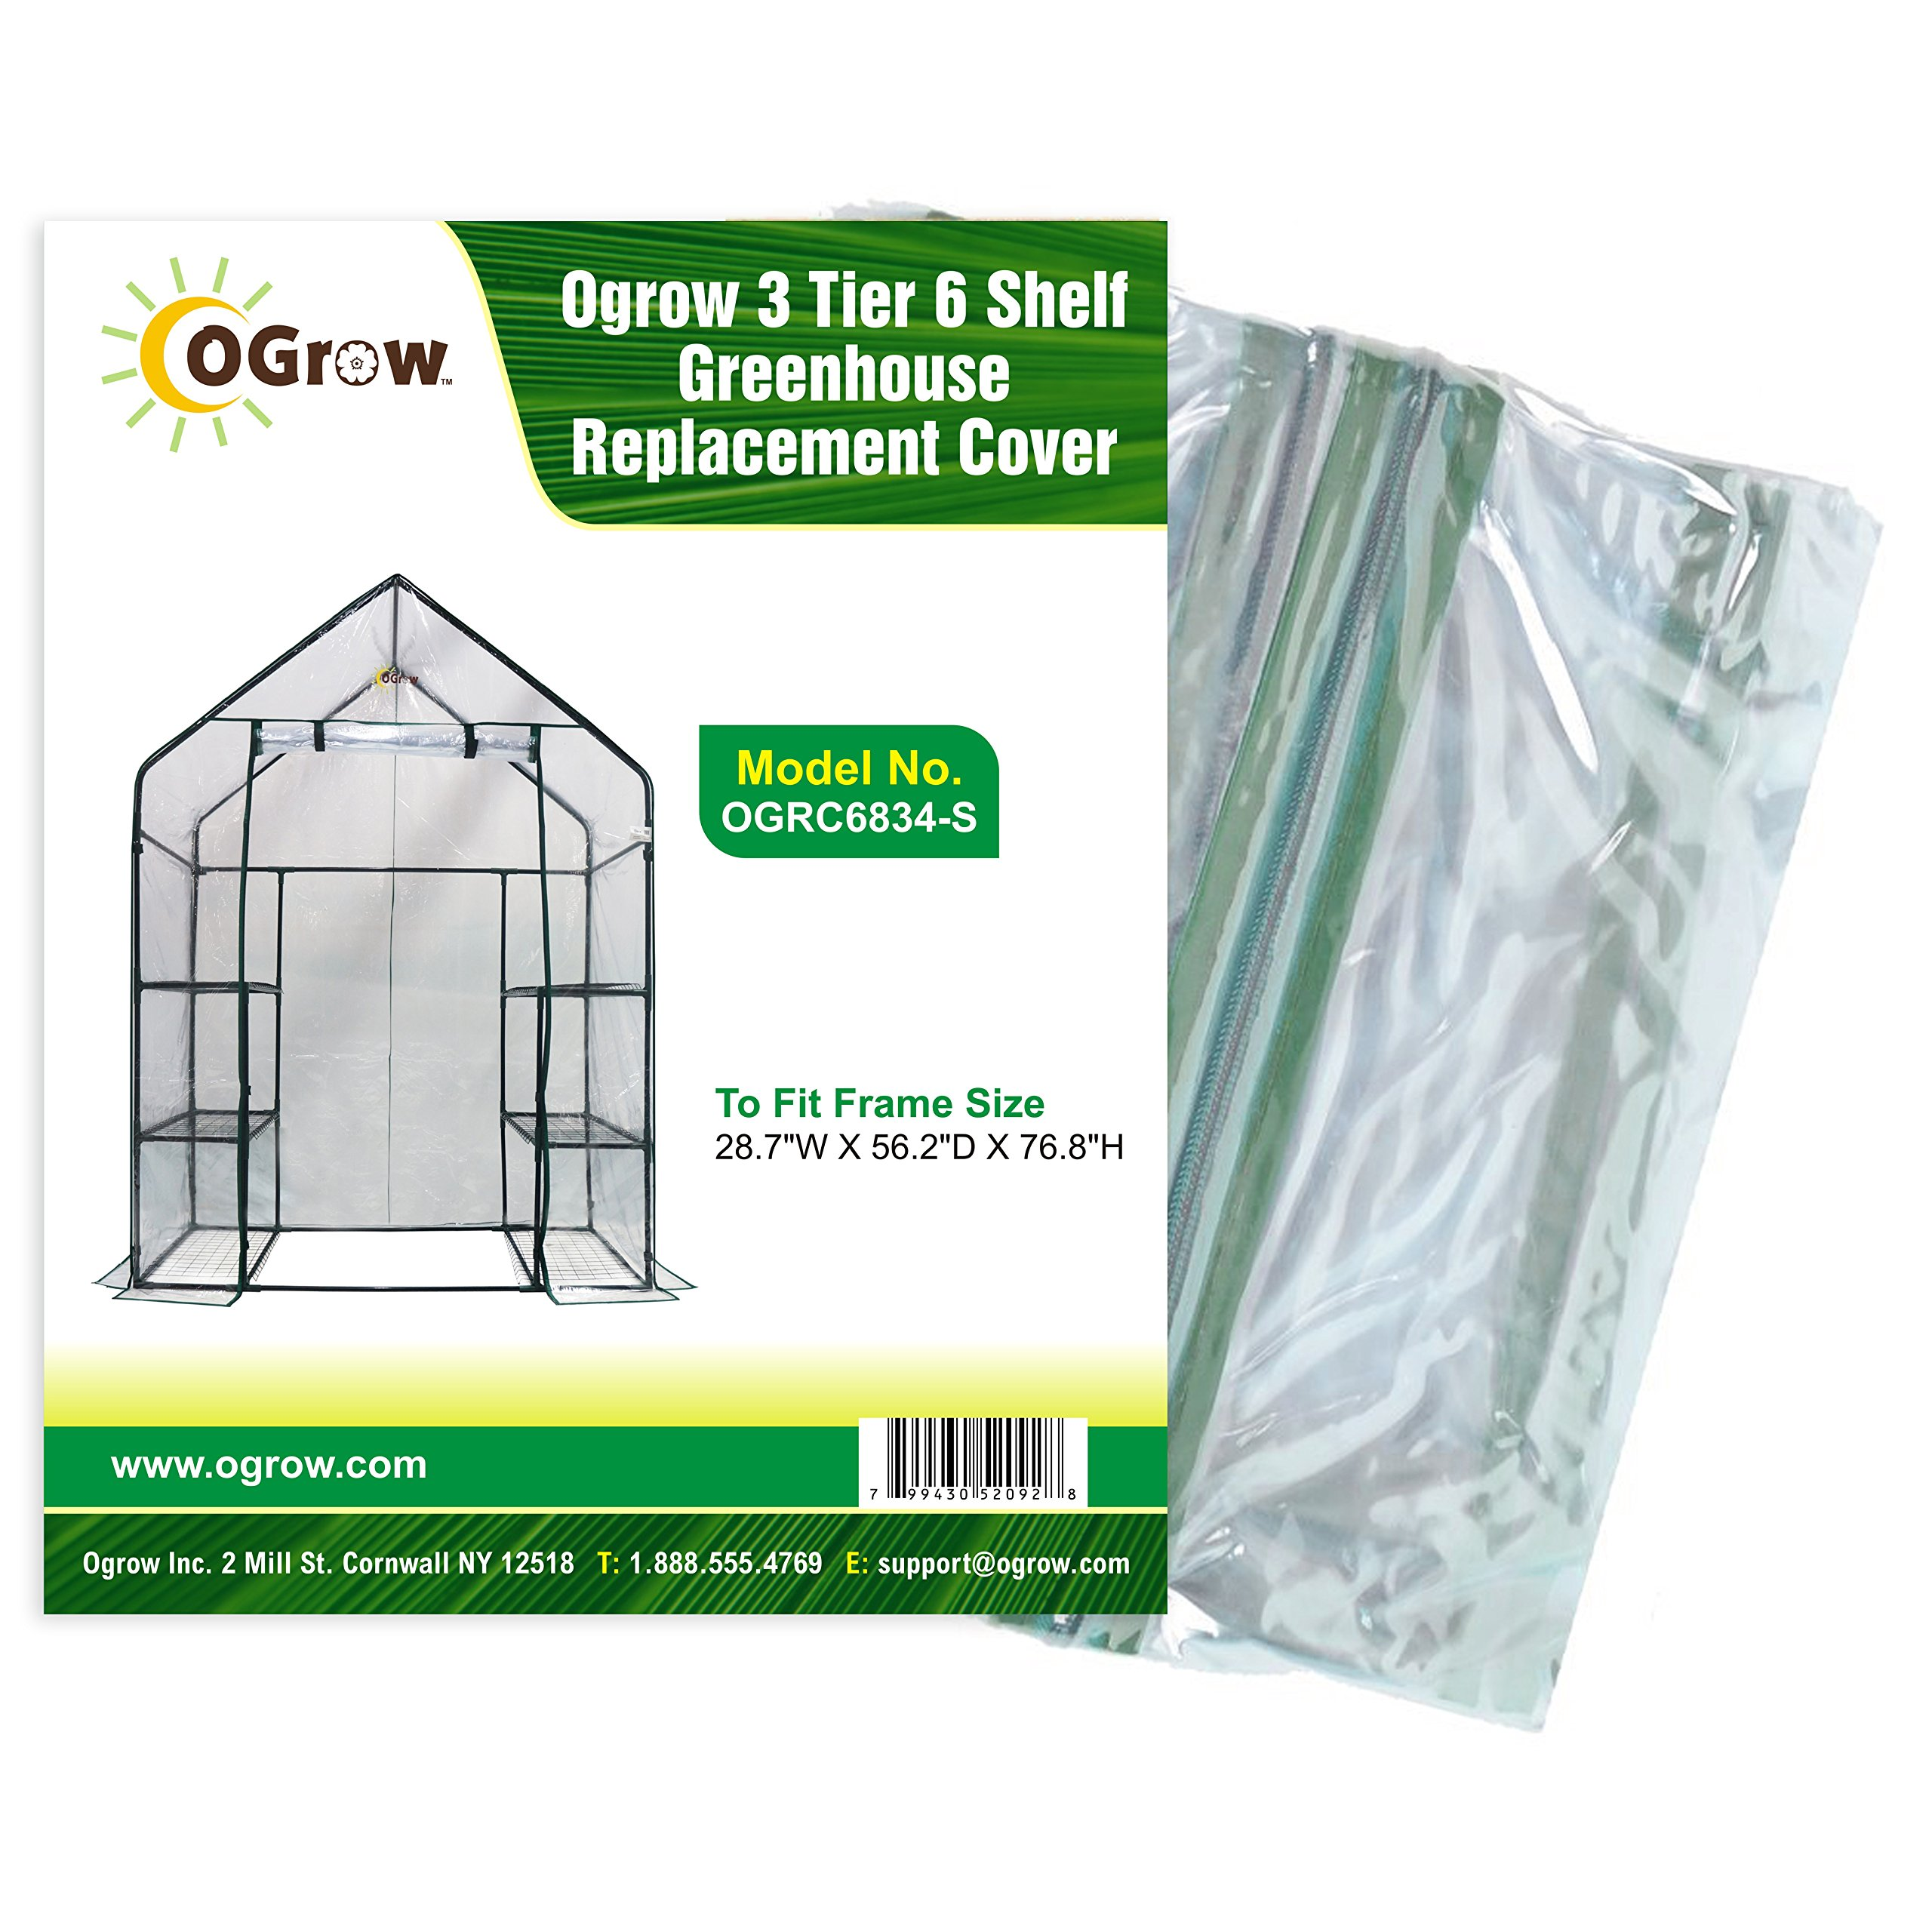 OGrow 3 Tier 6 Shelf Greenhouse Replacement Cover, 28.7 x 56.2 x 76.8-Inch by OGrow